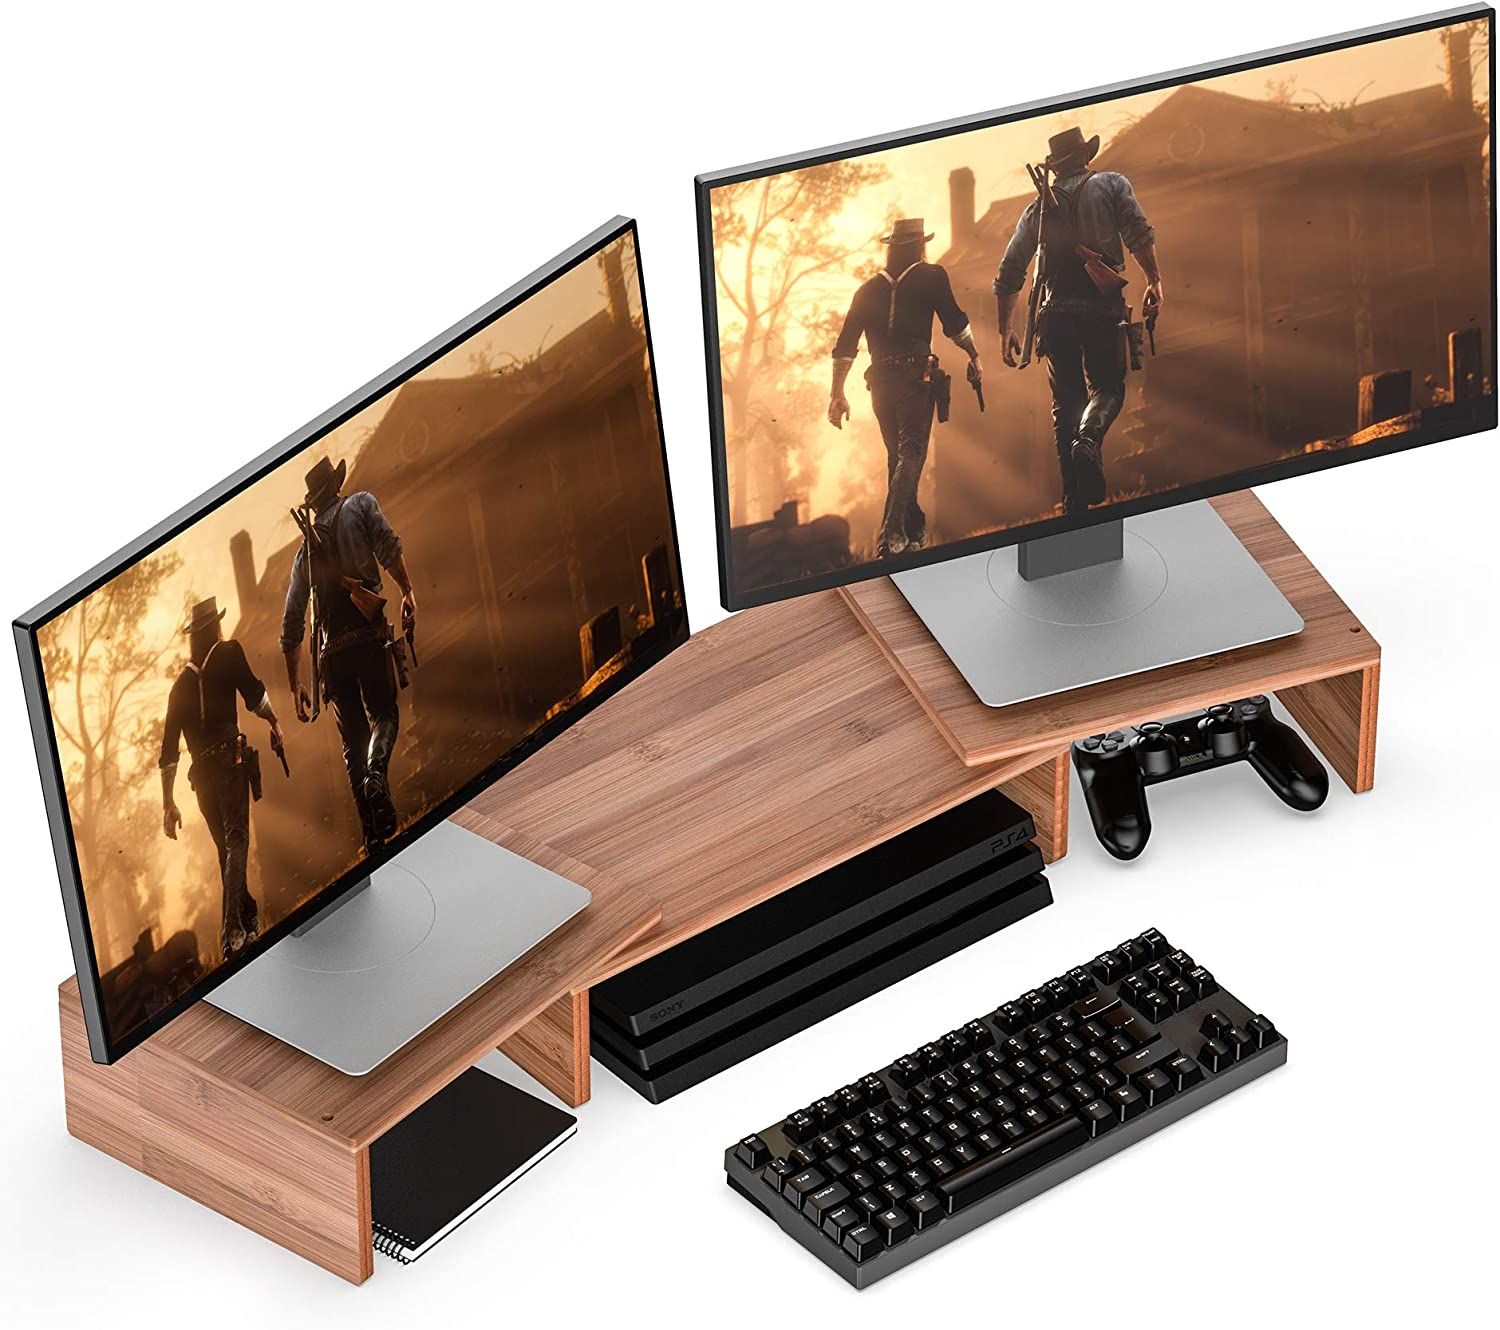 Well Weng Dual Monitor Riser with Adjustable Length and Angle Desktop Stand 3 Shelf Storage Organizer,Bamboo